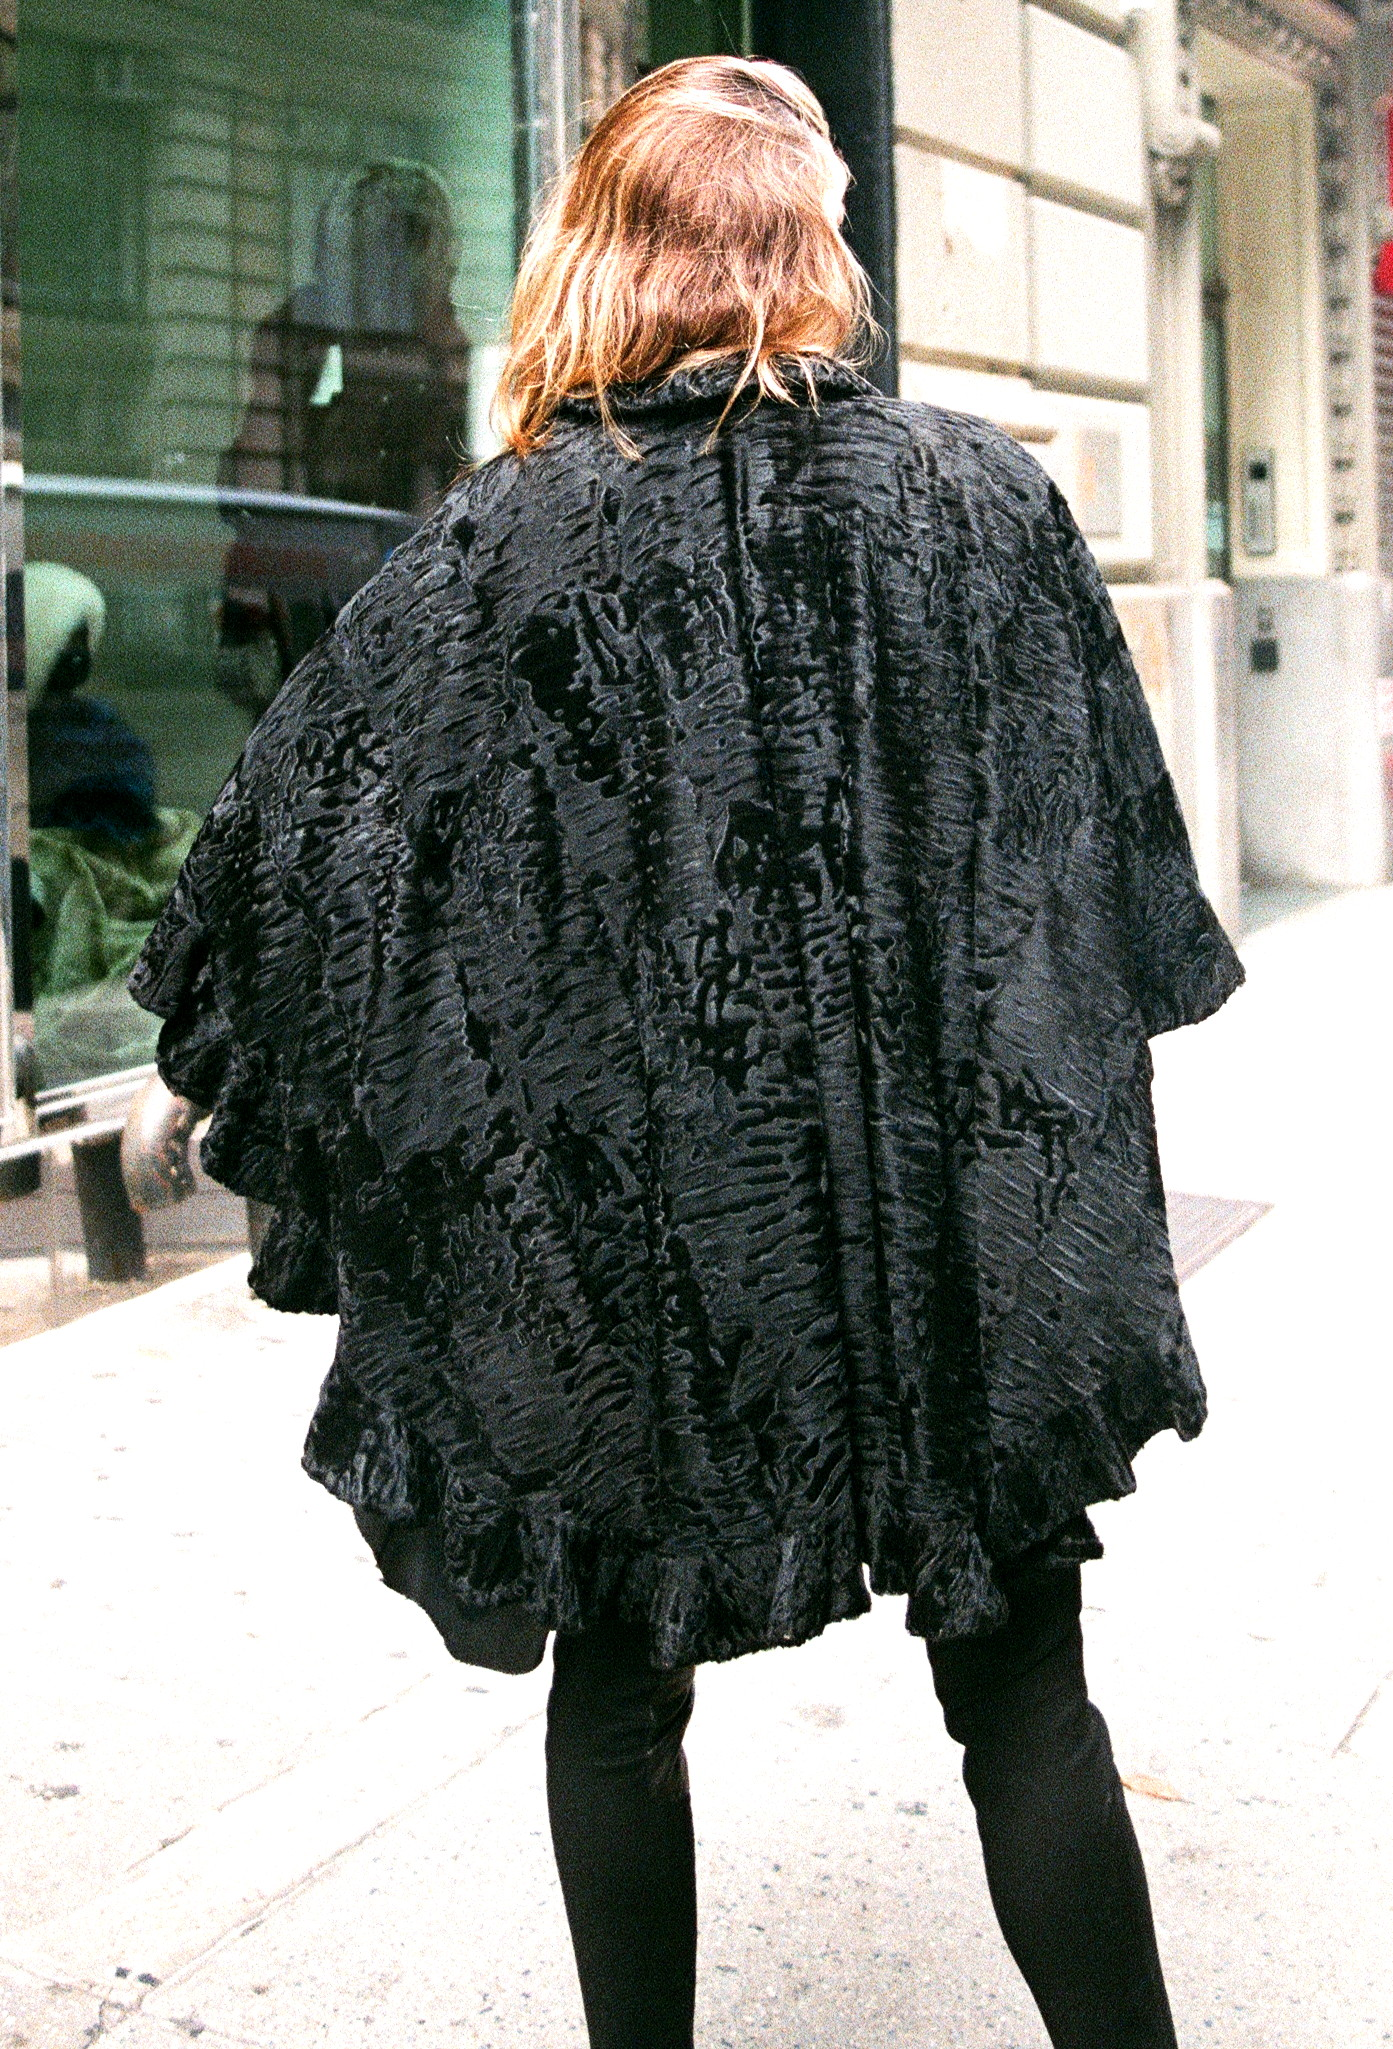 Valentino Designed Like New Black Dyed Swakara Lamb Cape ( size: 1 size fits all)